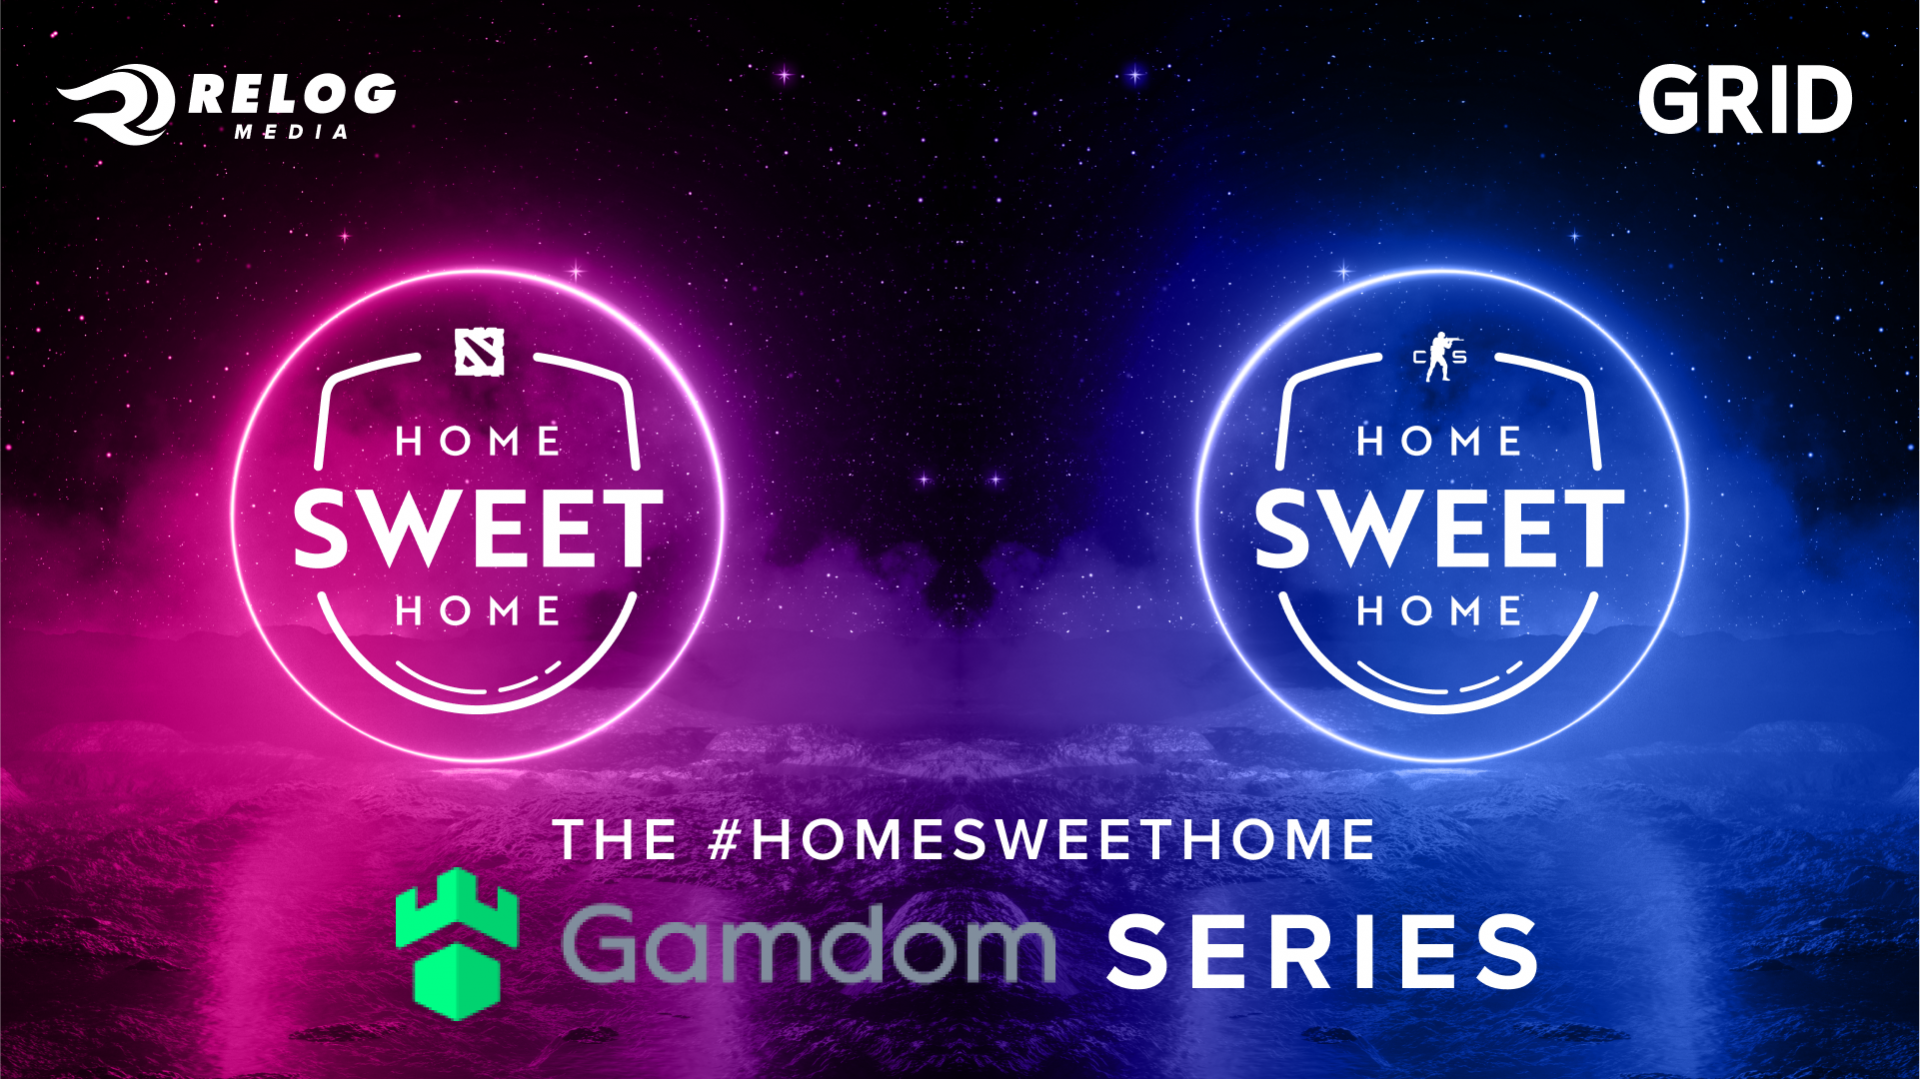 Gamdom named headline sponsor of HomeSweetHome events